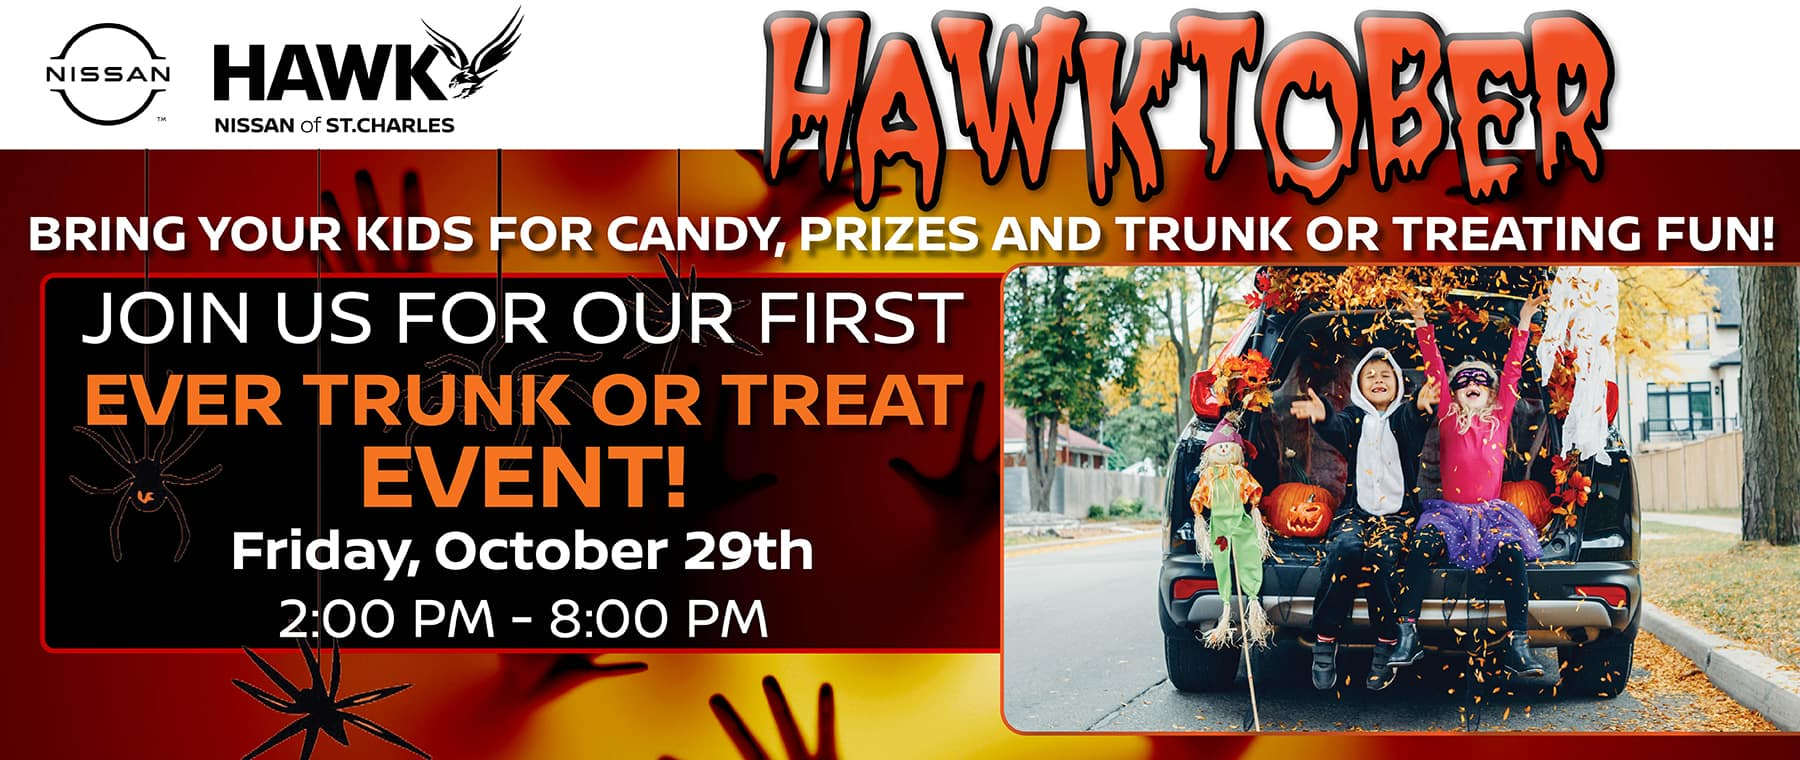 Trunk or Treat | Hawk Nissan of St. Charles